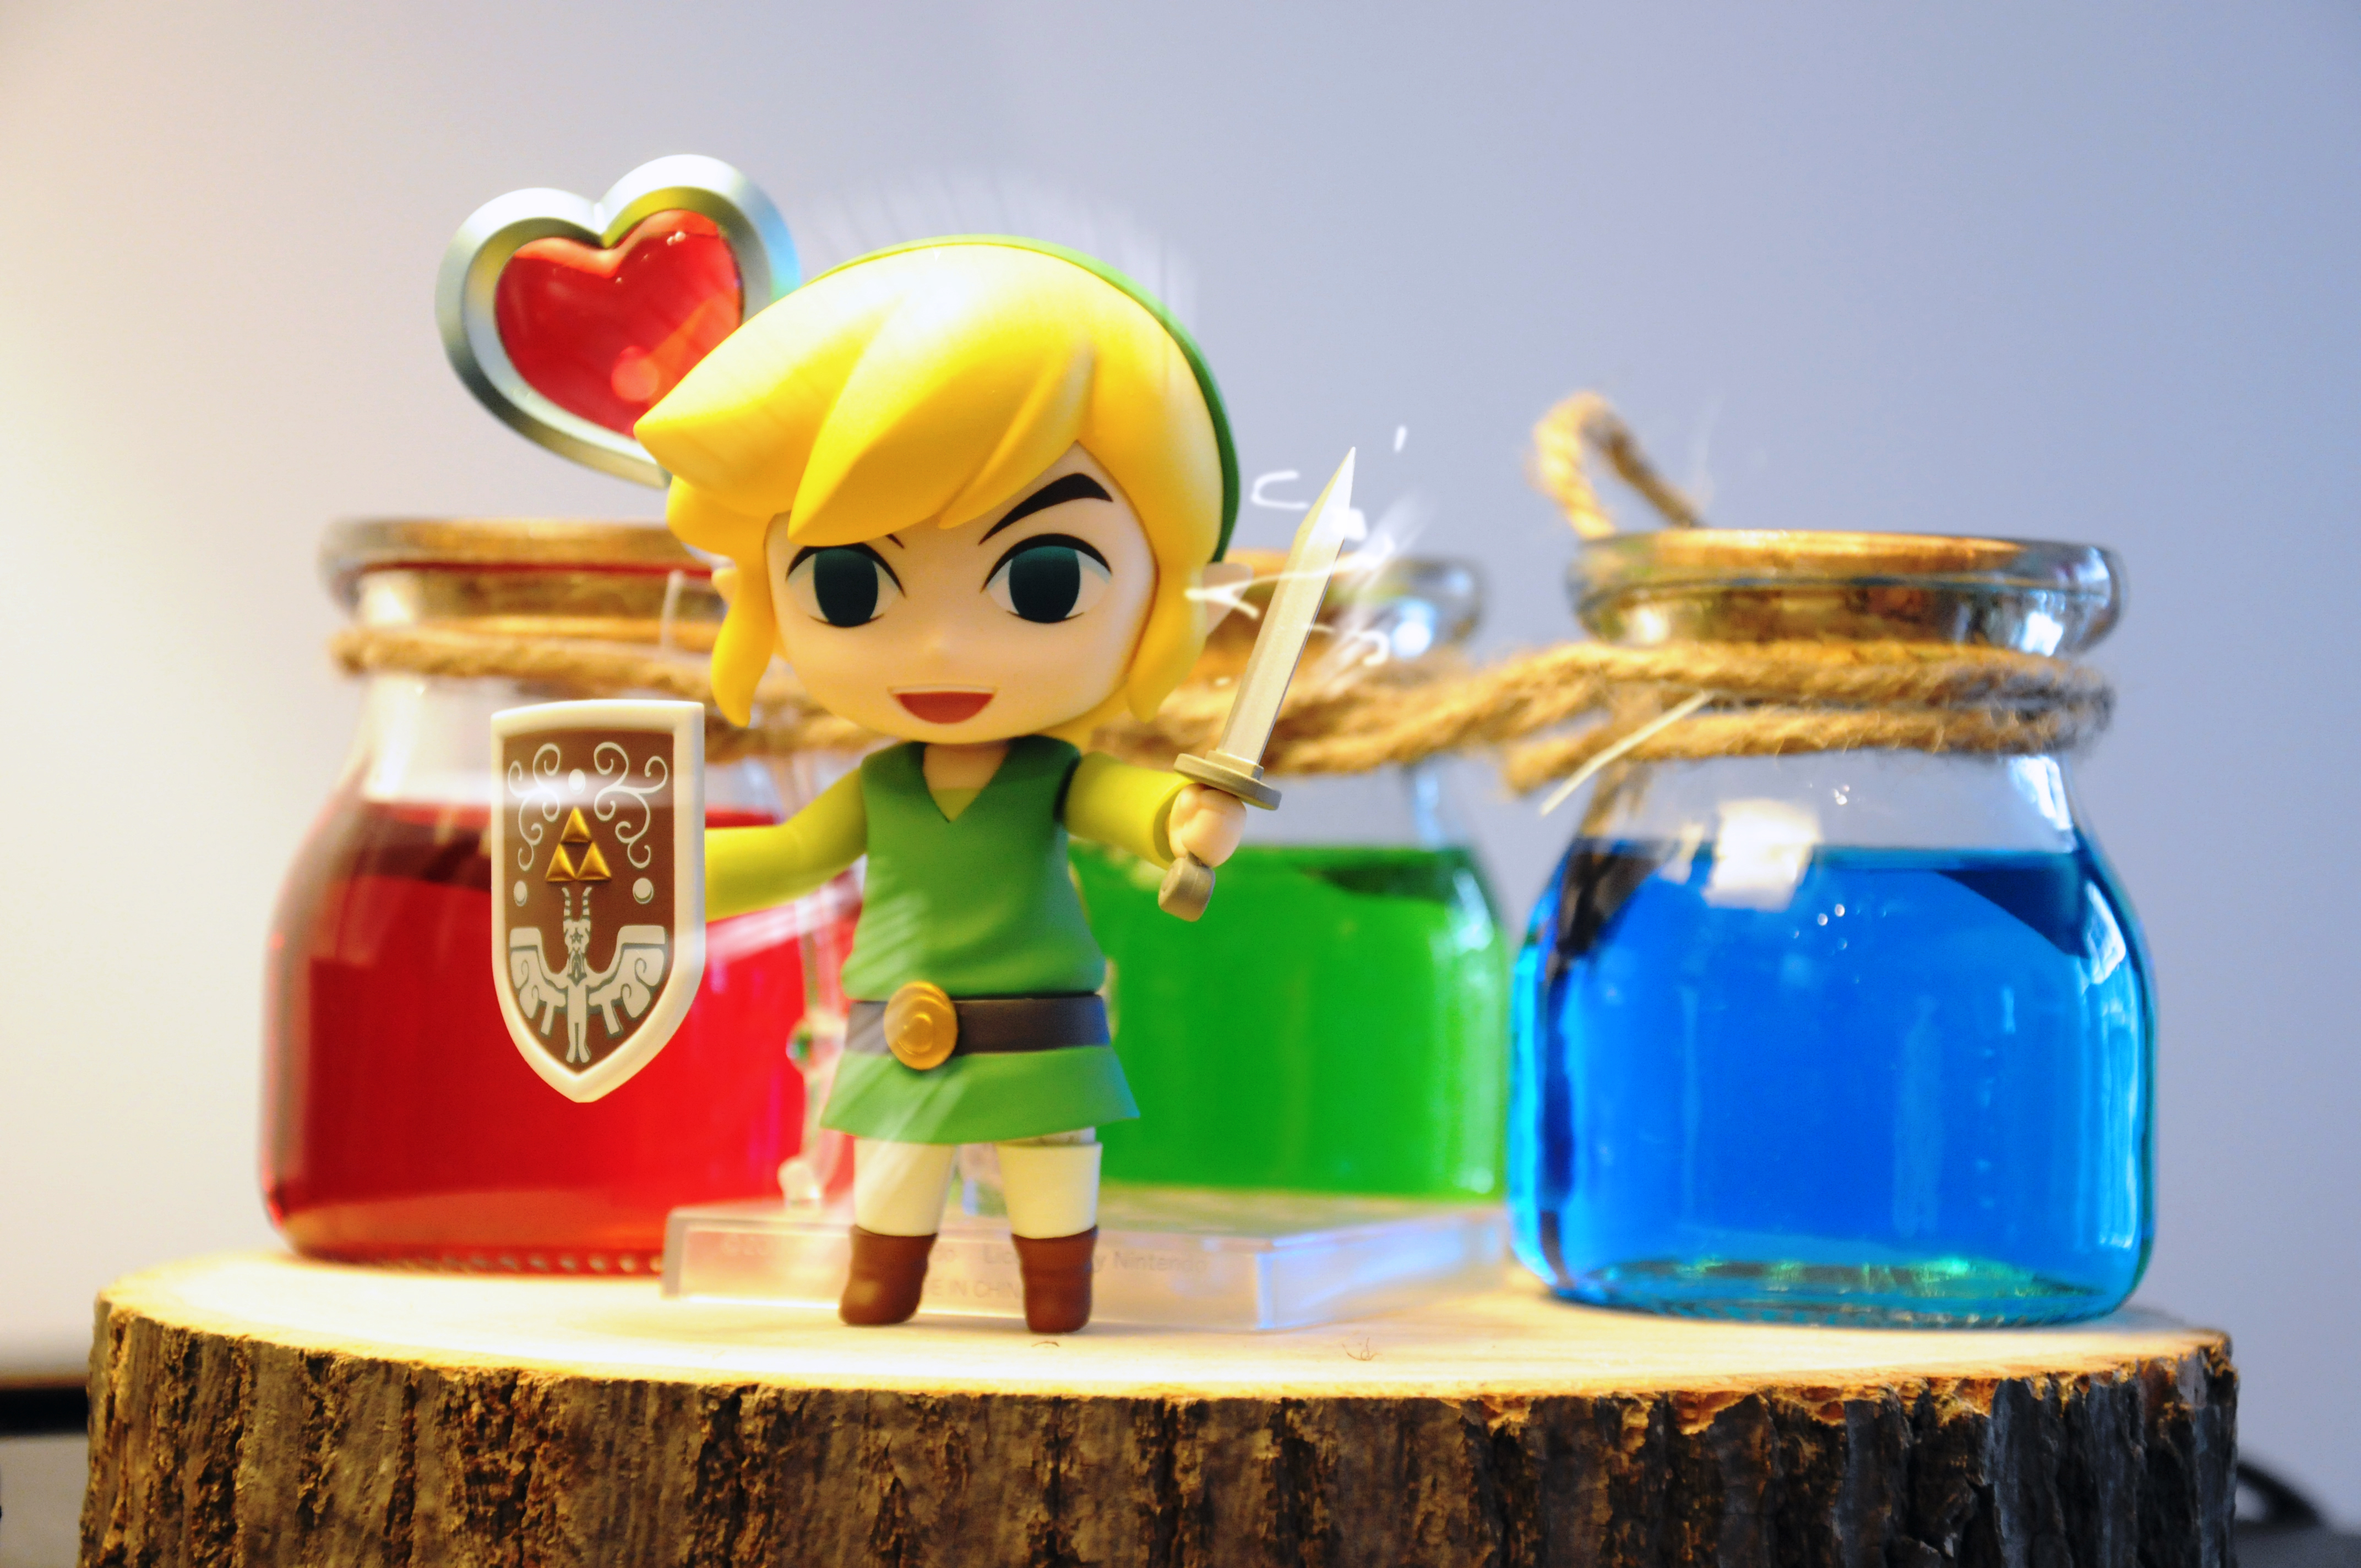 Decoration Zelda Link test FX